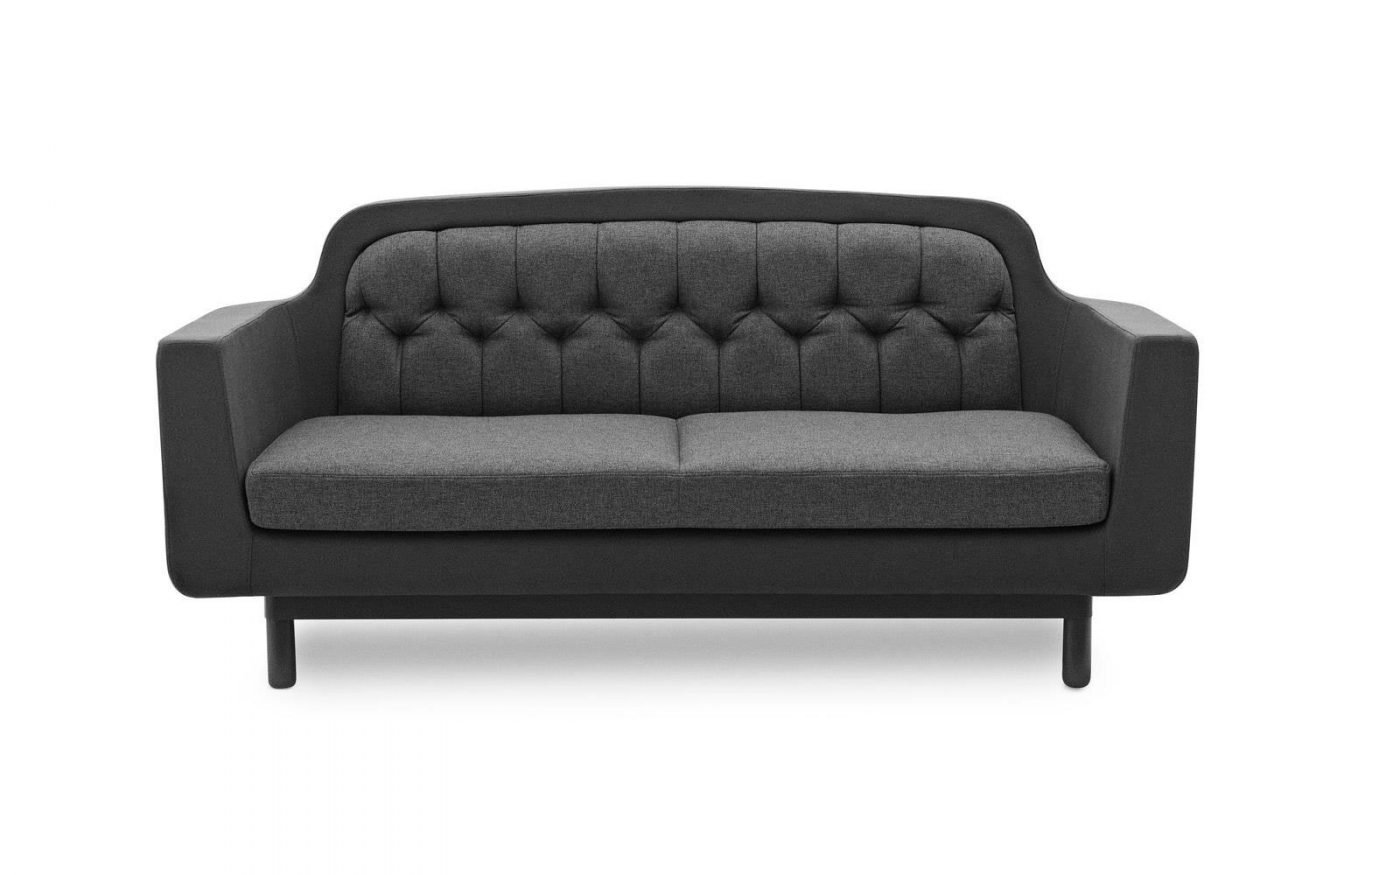 Onkel Sofa 2 Seater dark grey normann copenhagen